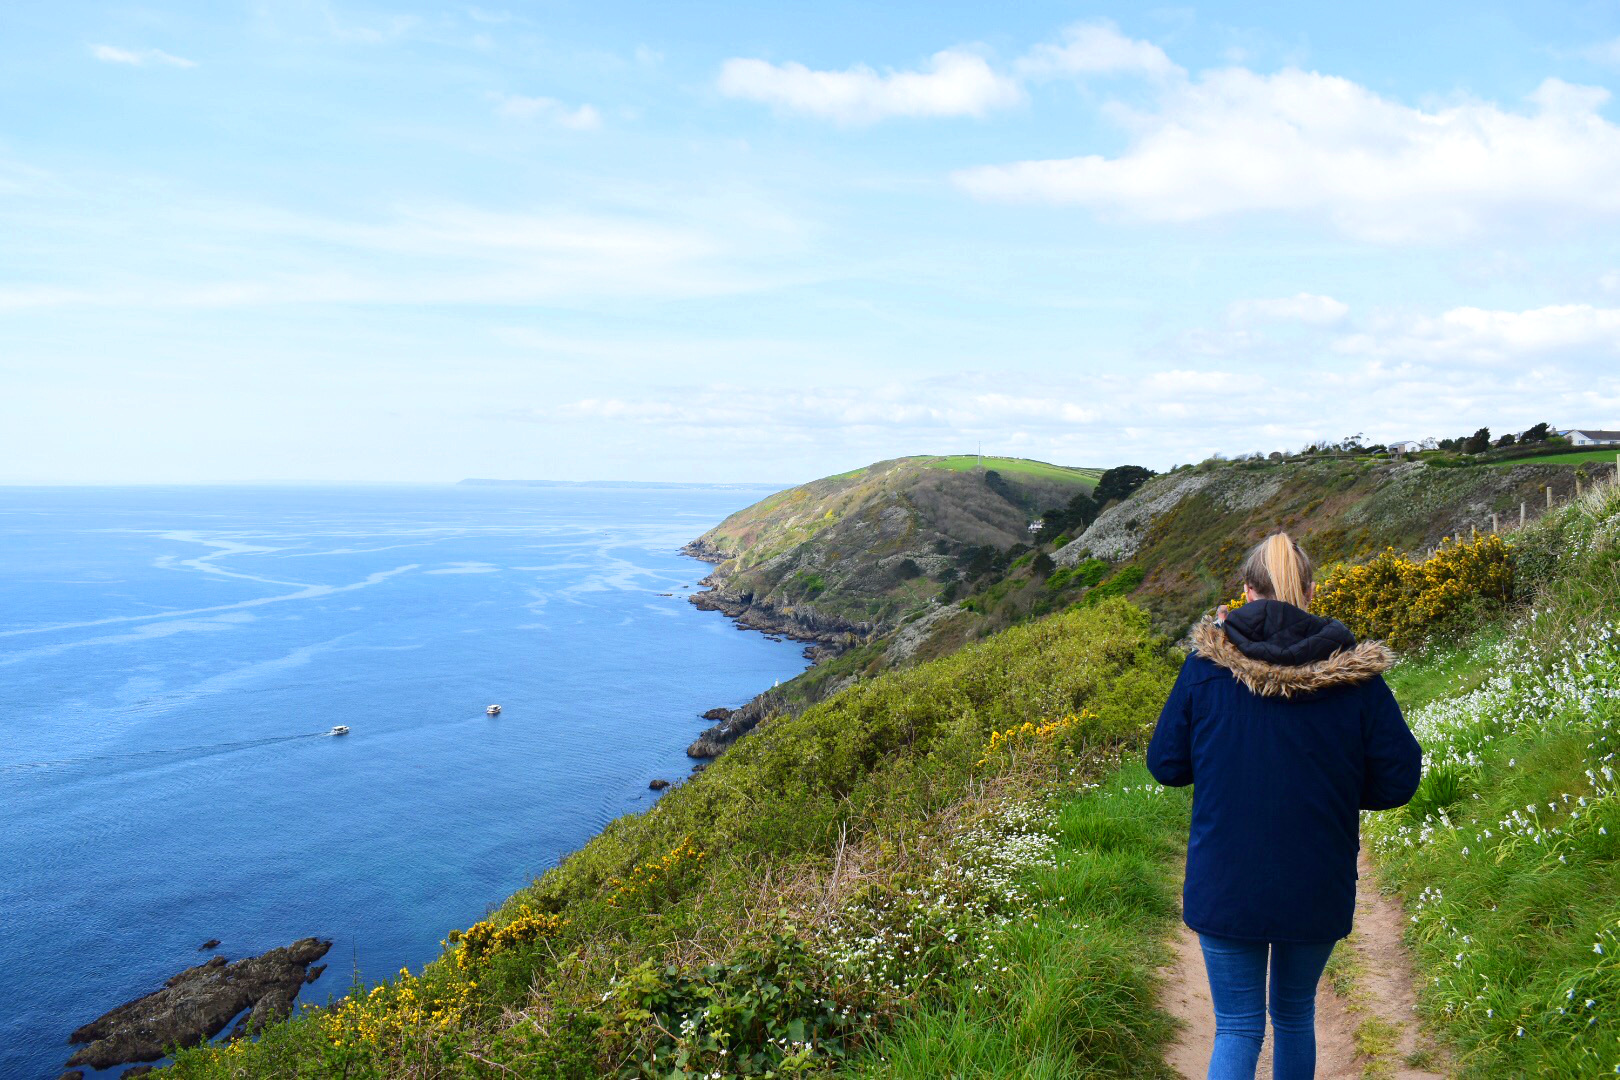 Heading along the South West Coast path to Polperro